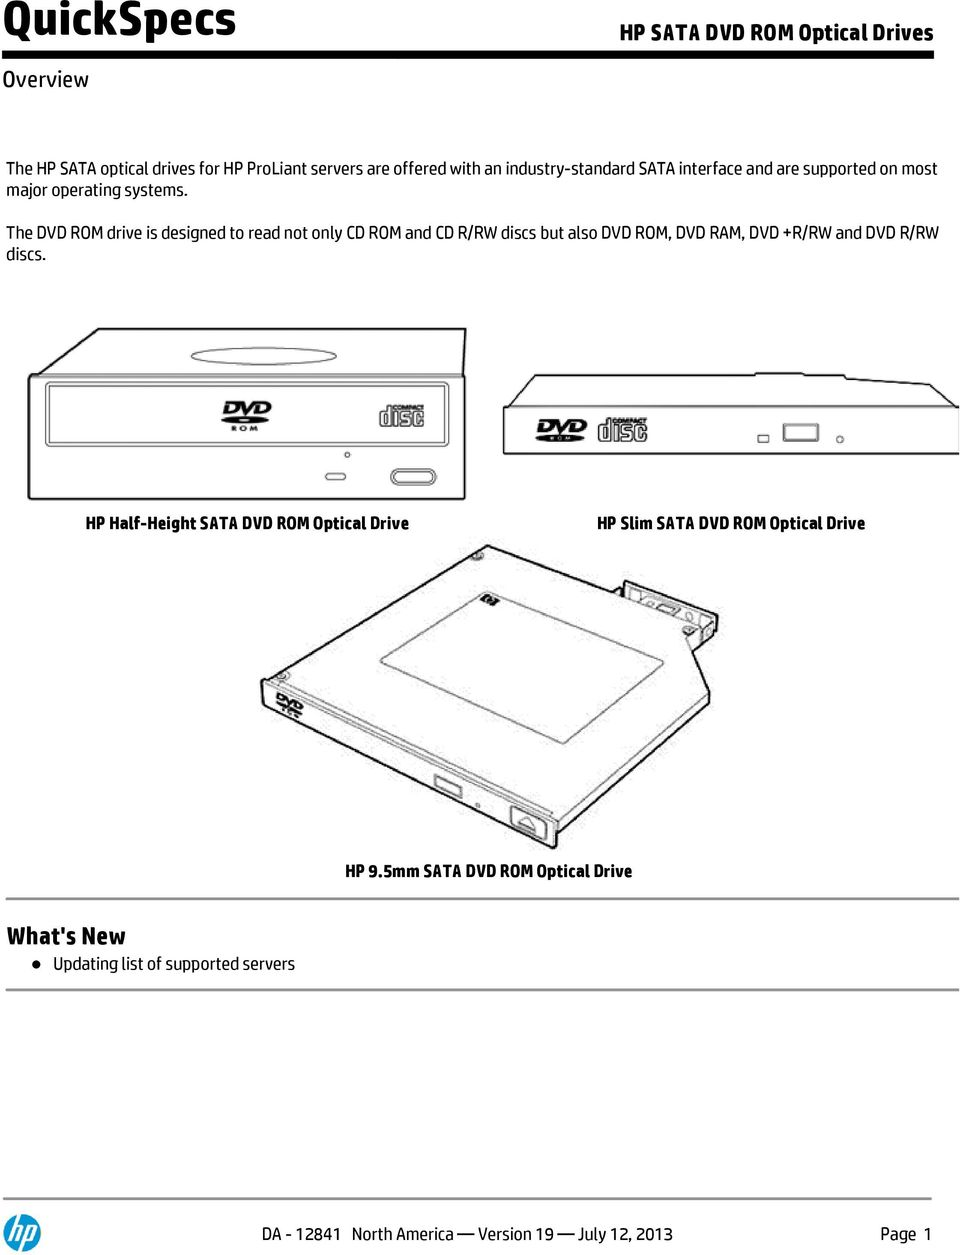 The DVD ROM drive is designed to read not only CD ROM and CD R/RW discs but also DVD ROM, DVD RAM, DVD +R/RW and DVD R/RW